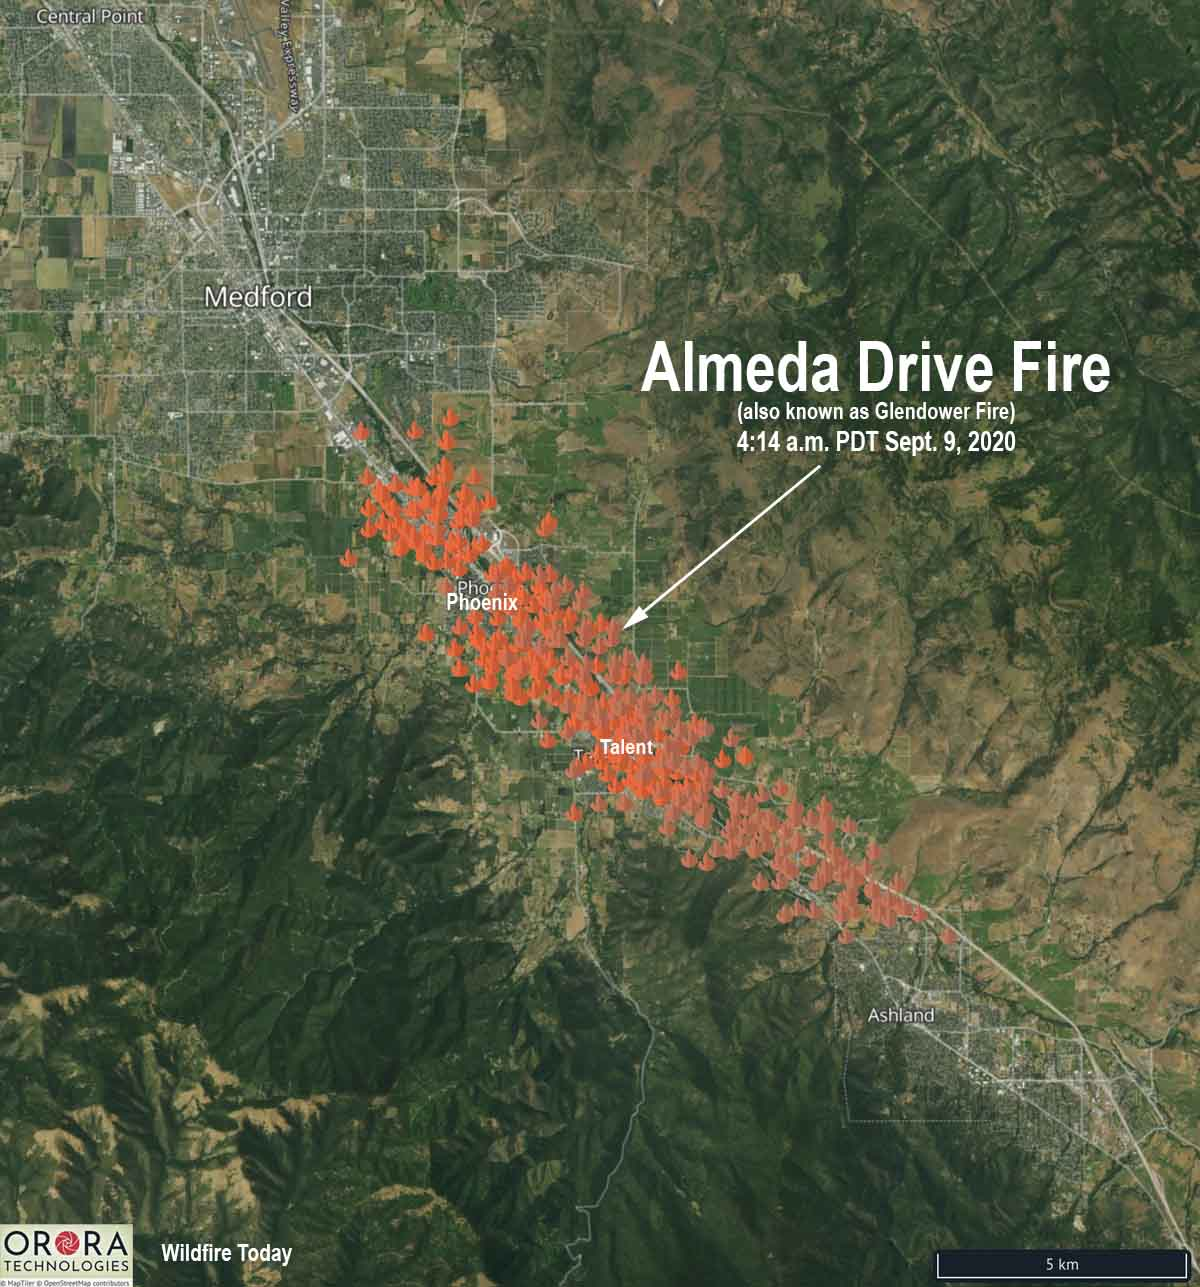 Map of the Almeda Drive Fire